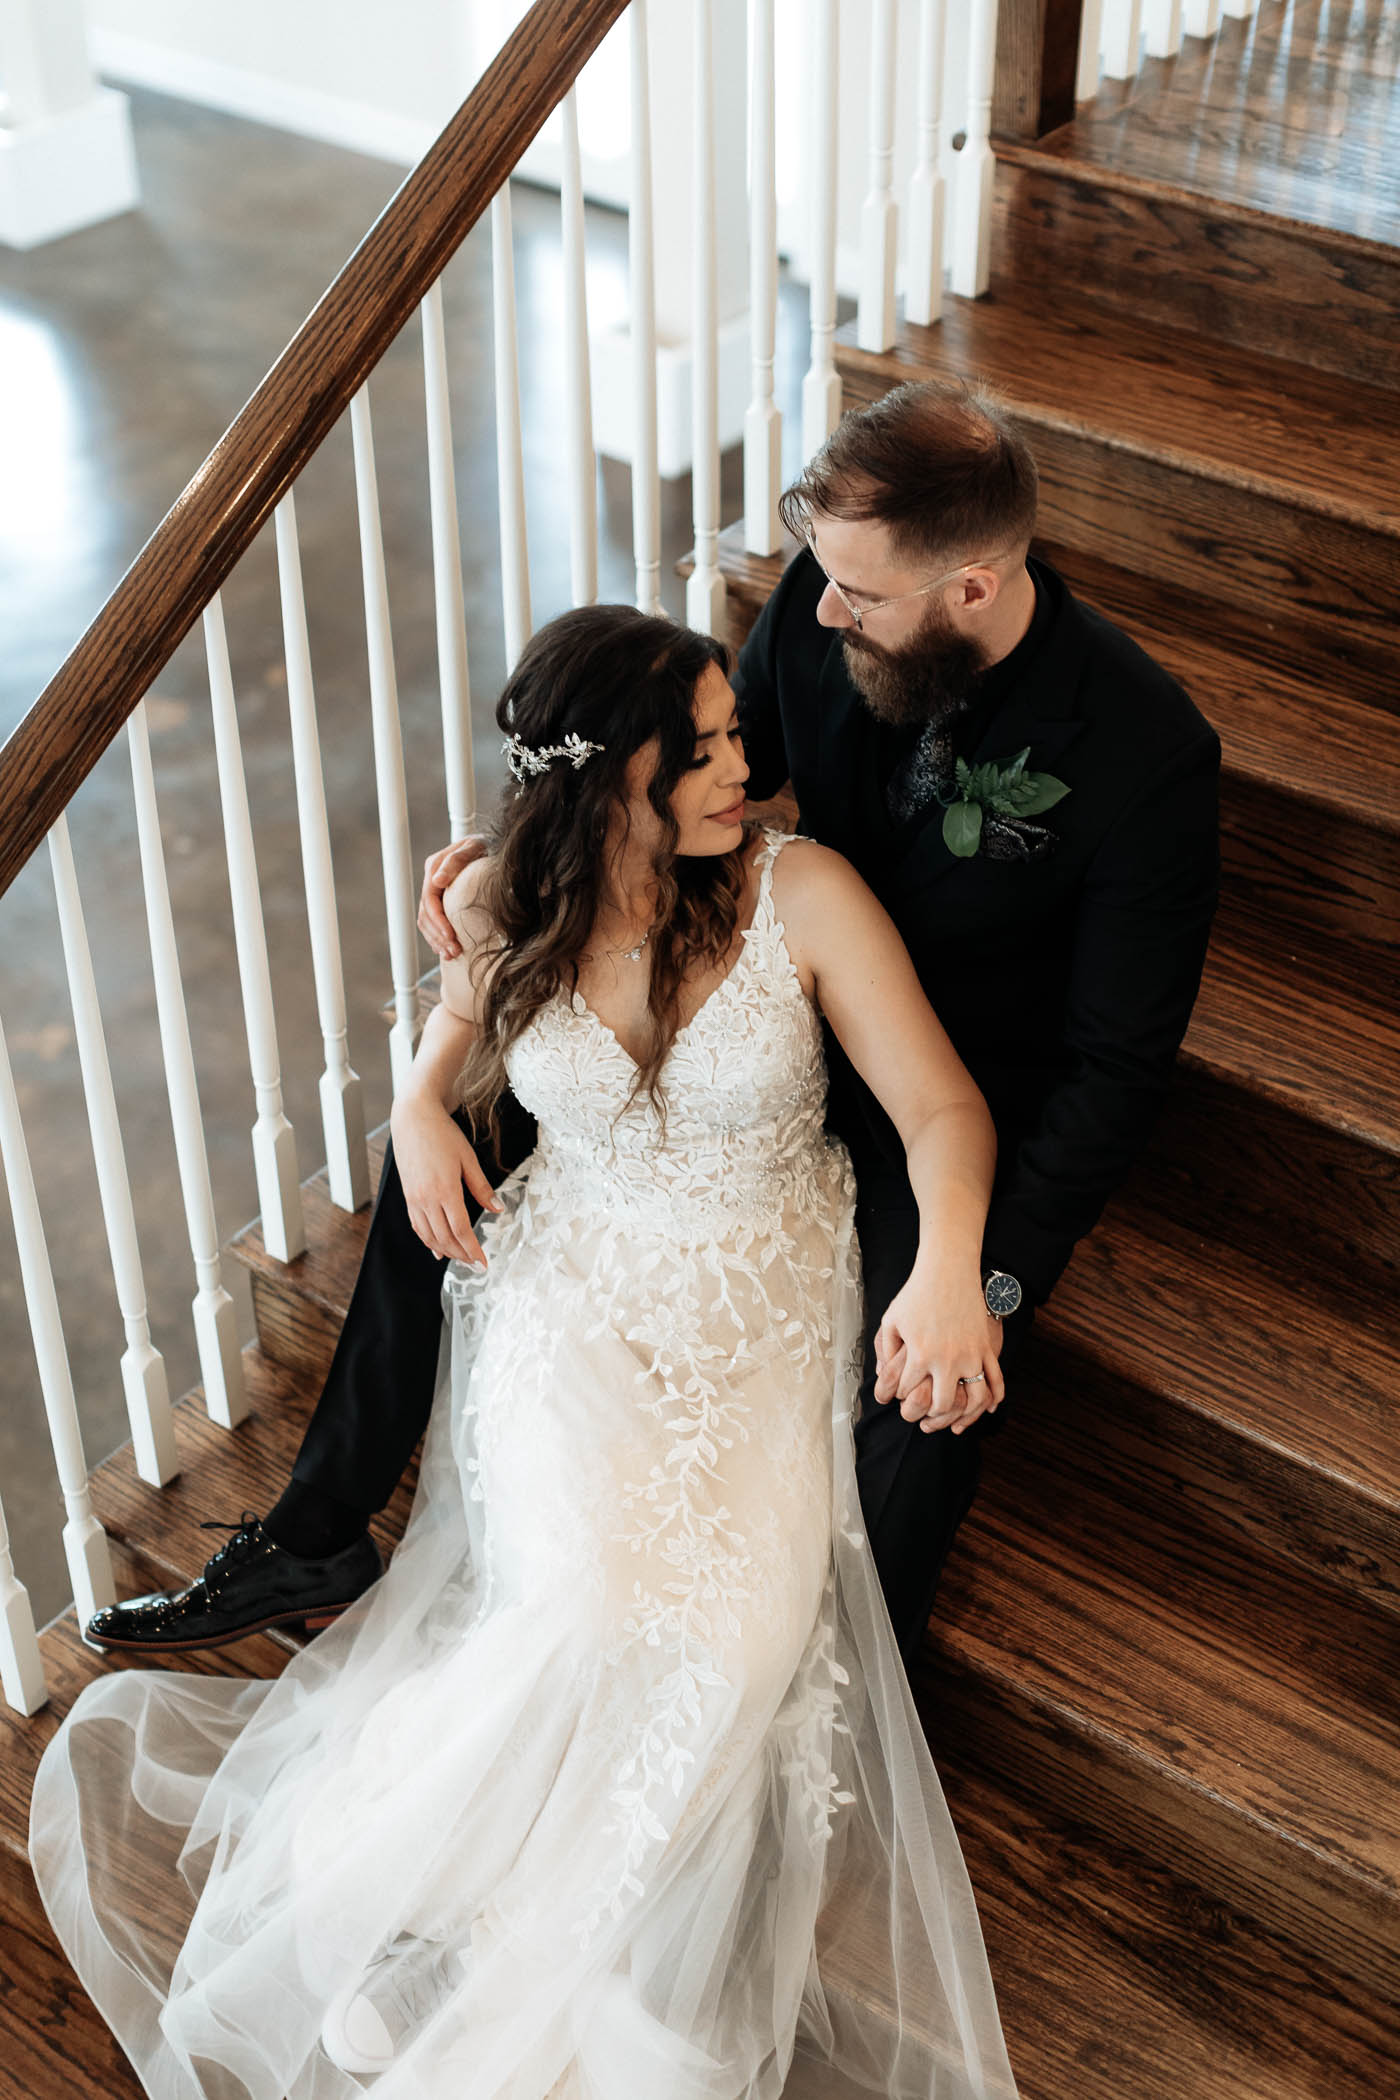 Bride and groom sitting down on stairs after wedding ceremony